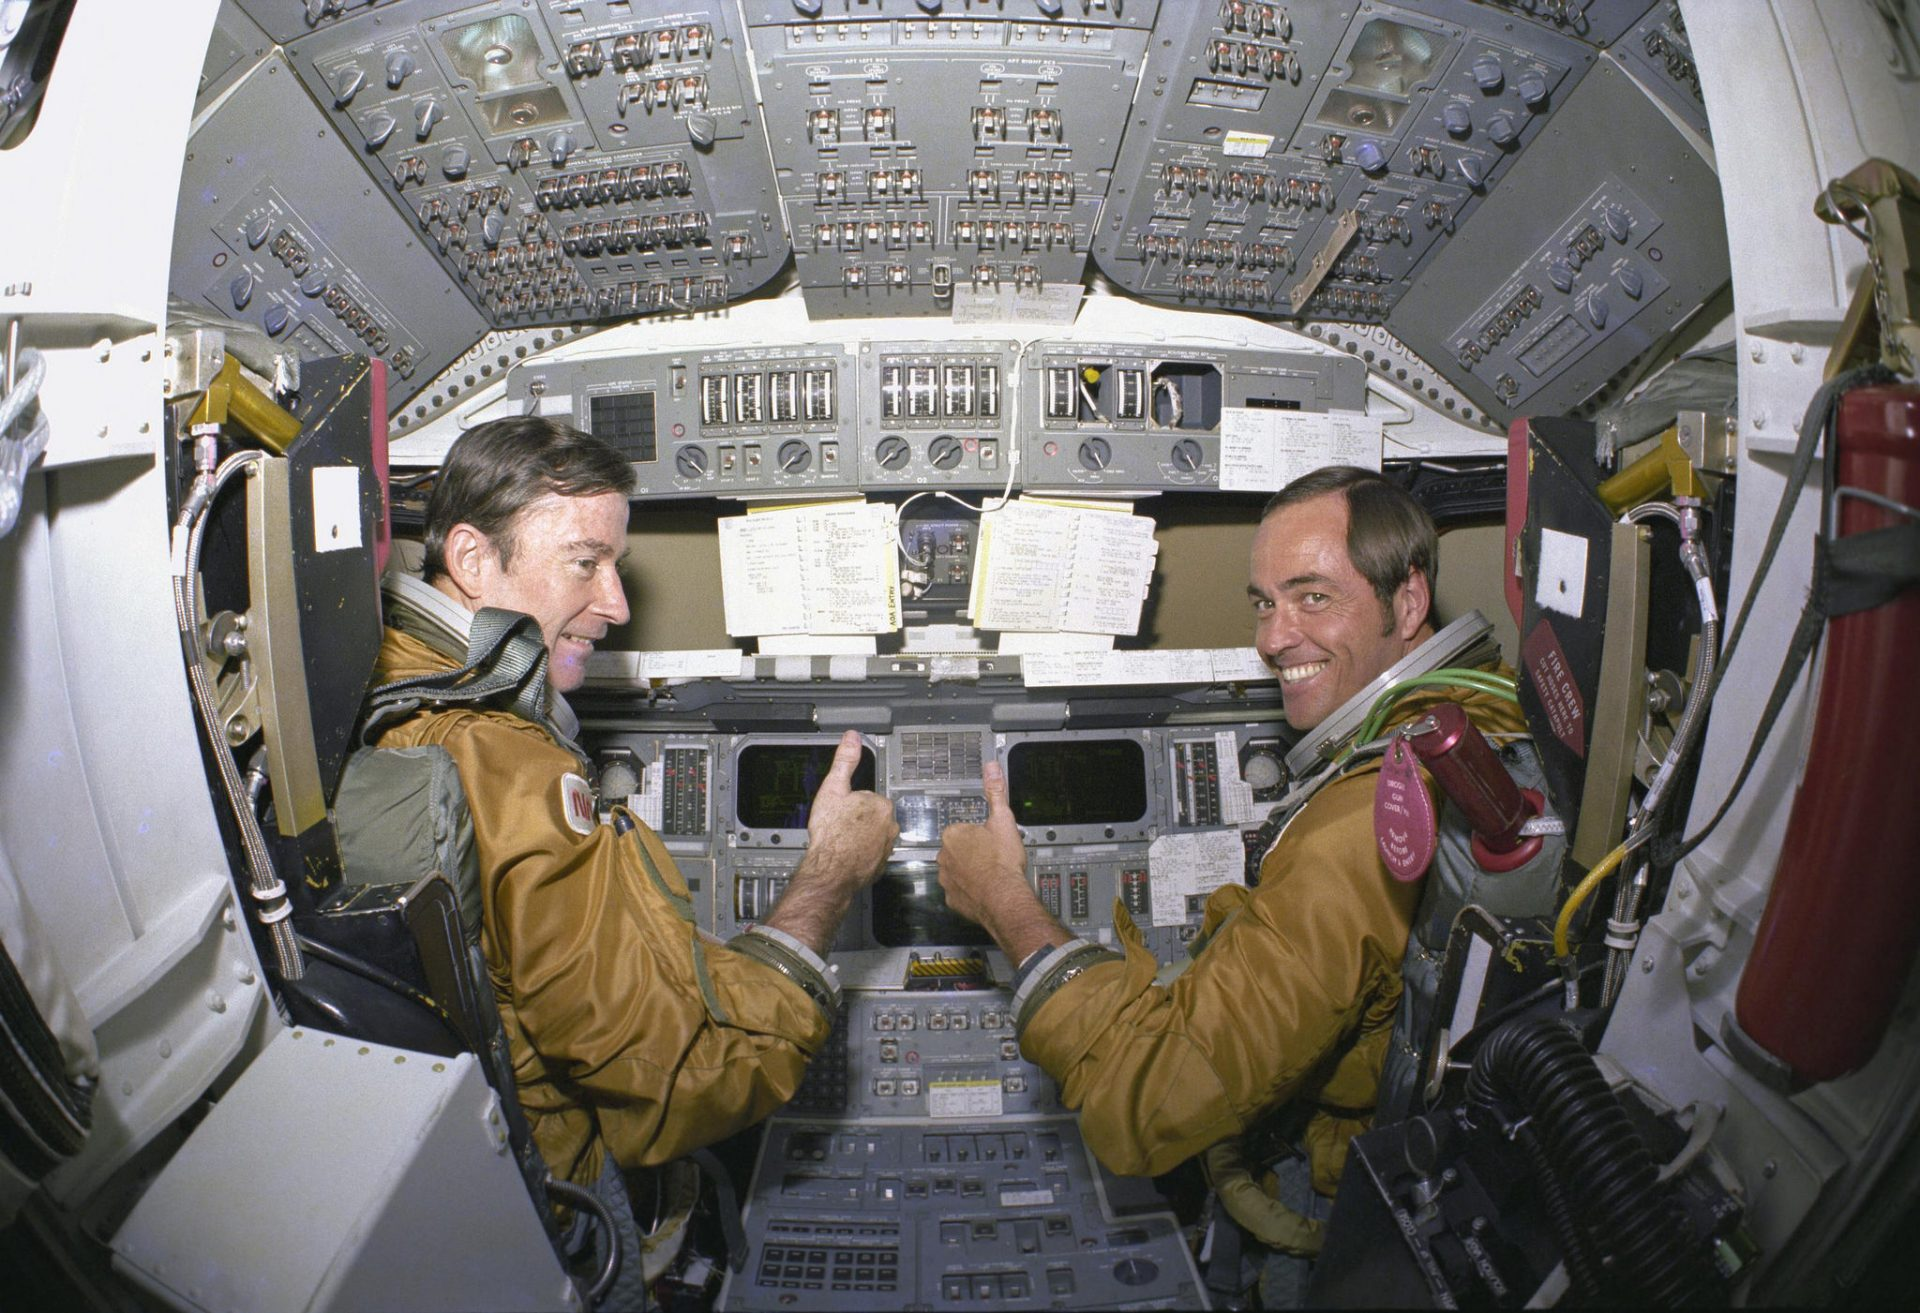 Commander John Young and Pilot Robert Crippen, take a break from their intensive training schedule to pose for pictures in the flight deck of the shuttle Columbia.